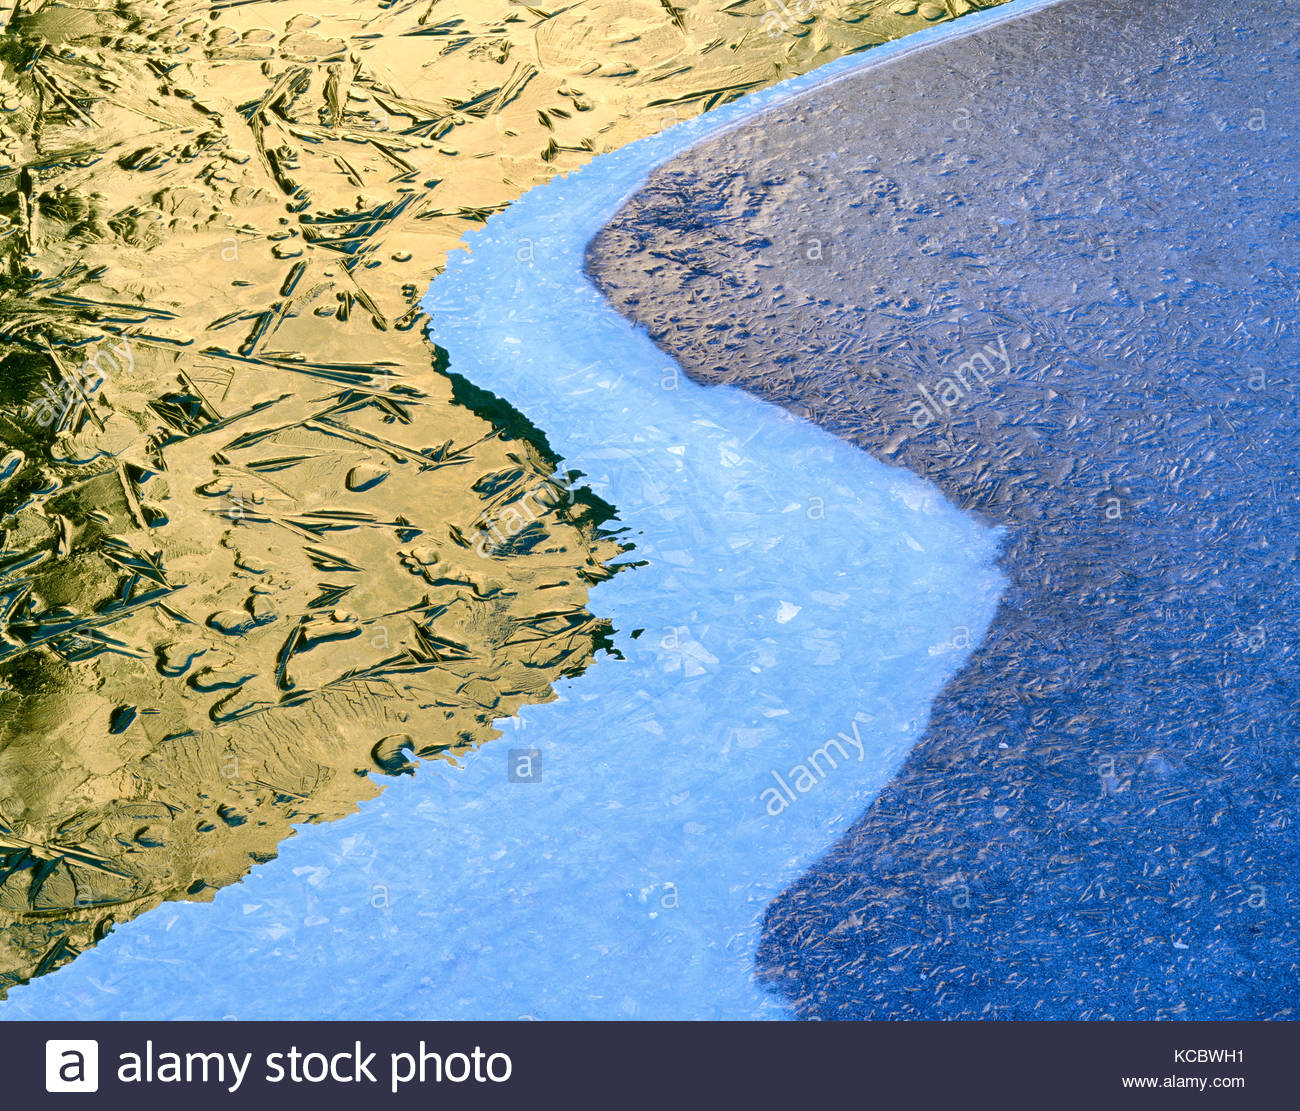 Three Layers of Ice Patterns in the Merced River, Yosemite National Park, California Stock Photo